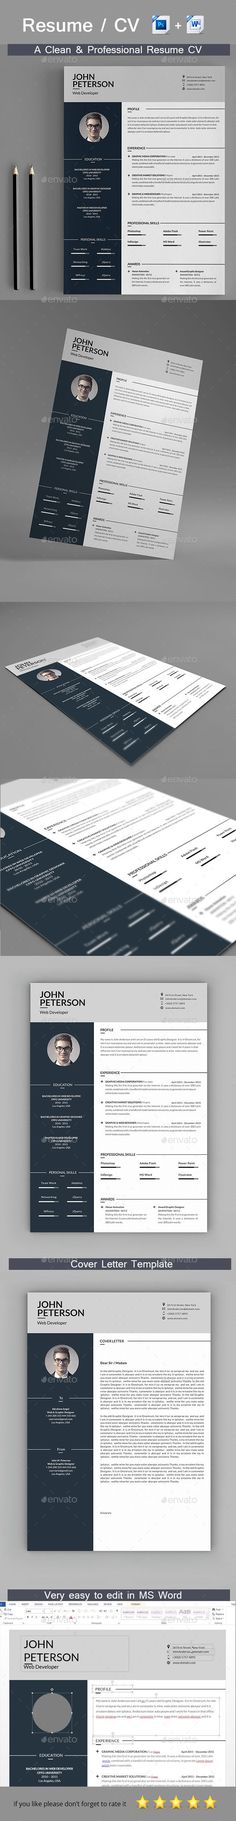 Resume Template PSD, MS Word. Download here: http://graphicriver.net/item/resume/16184564?ref=ksioks